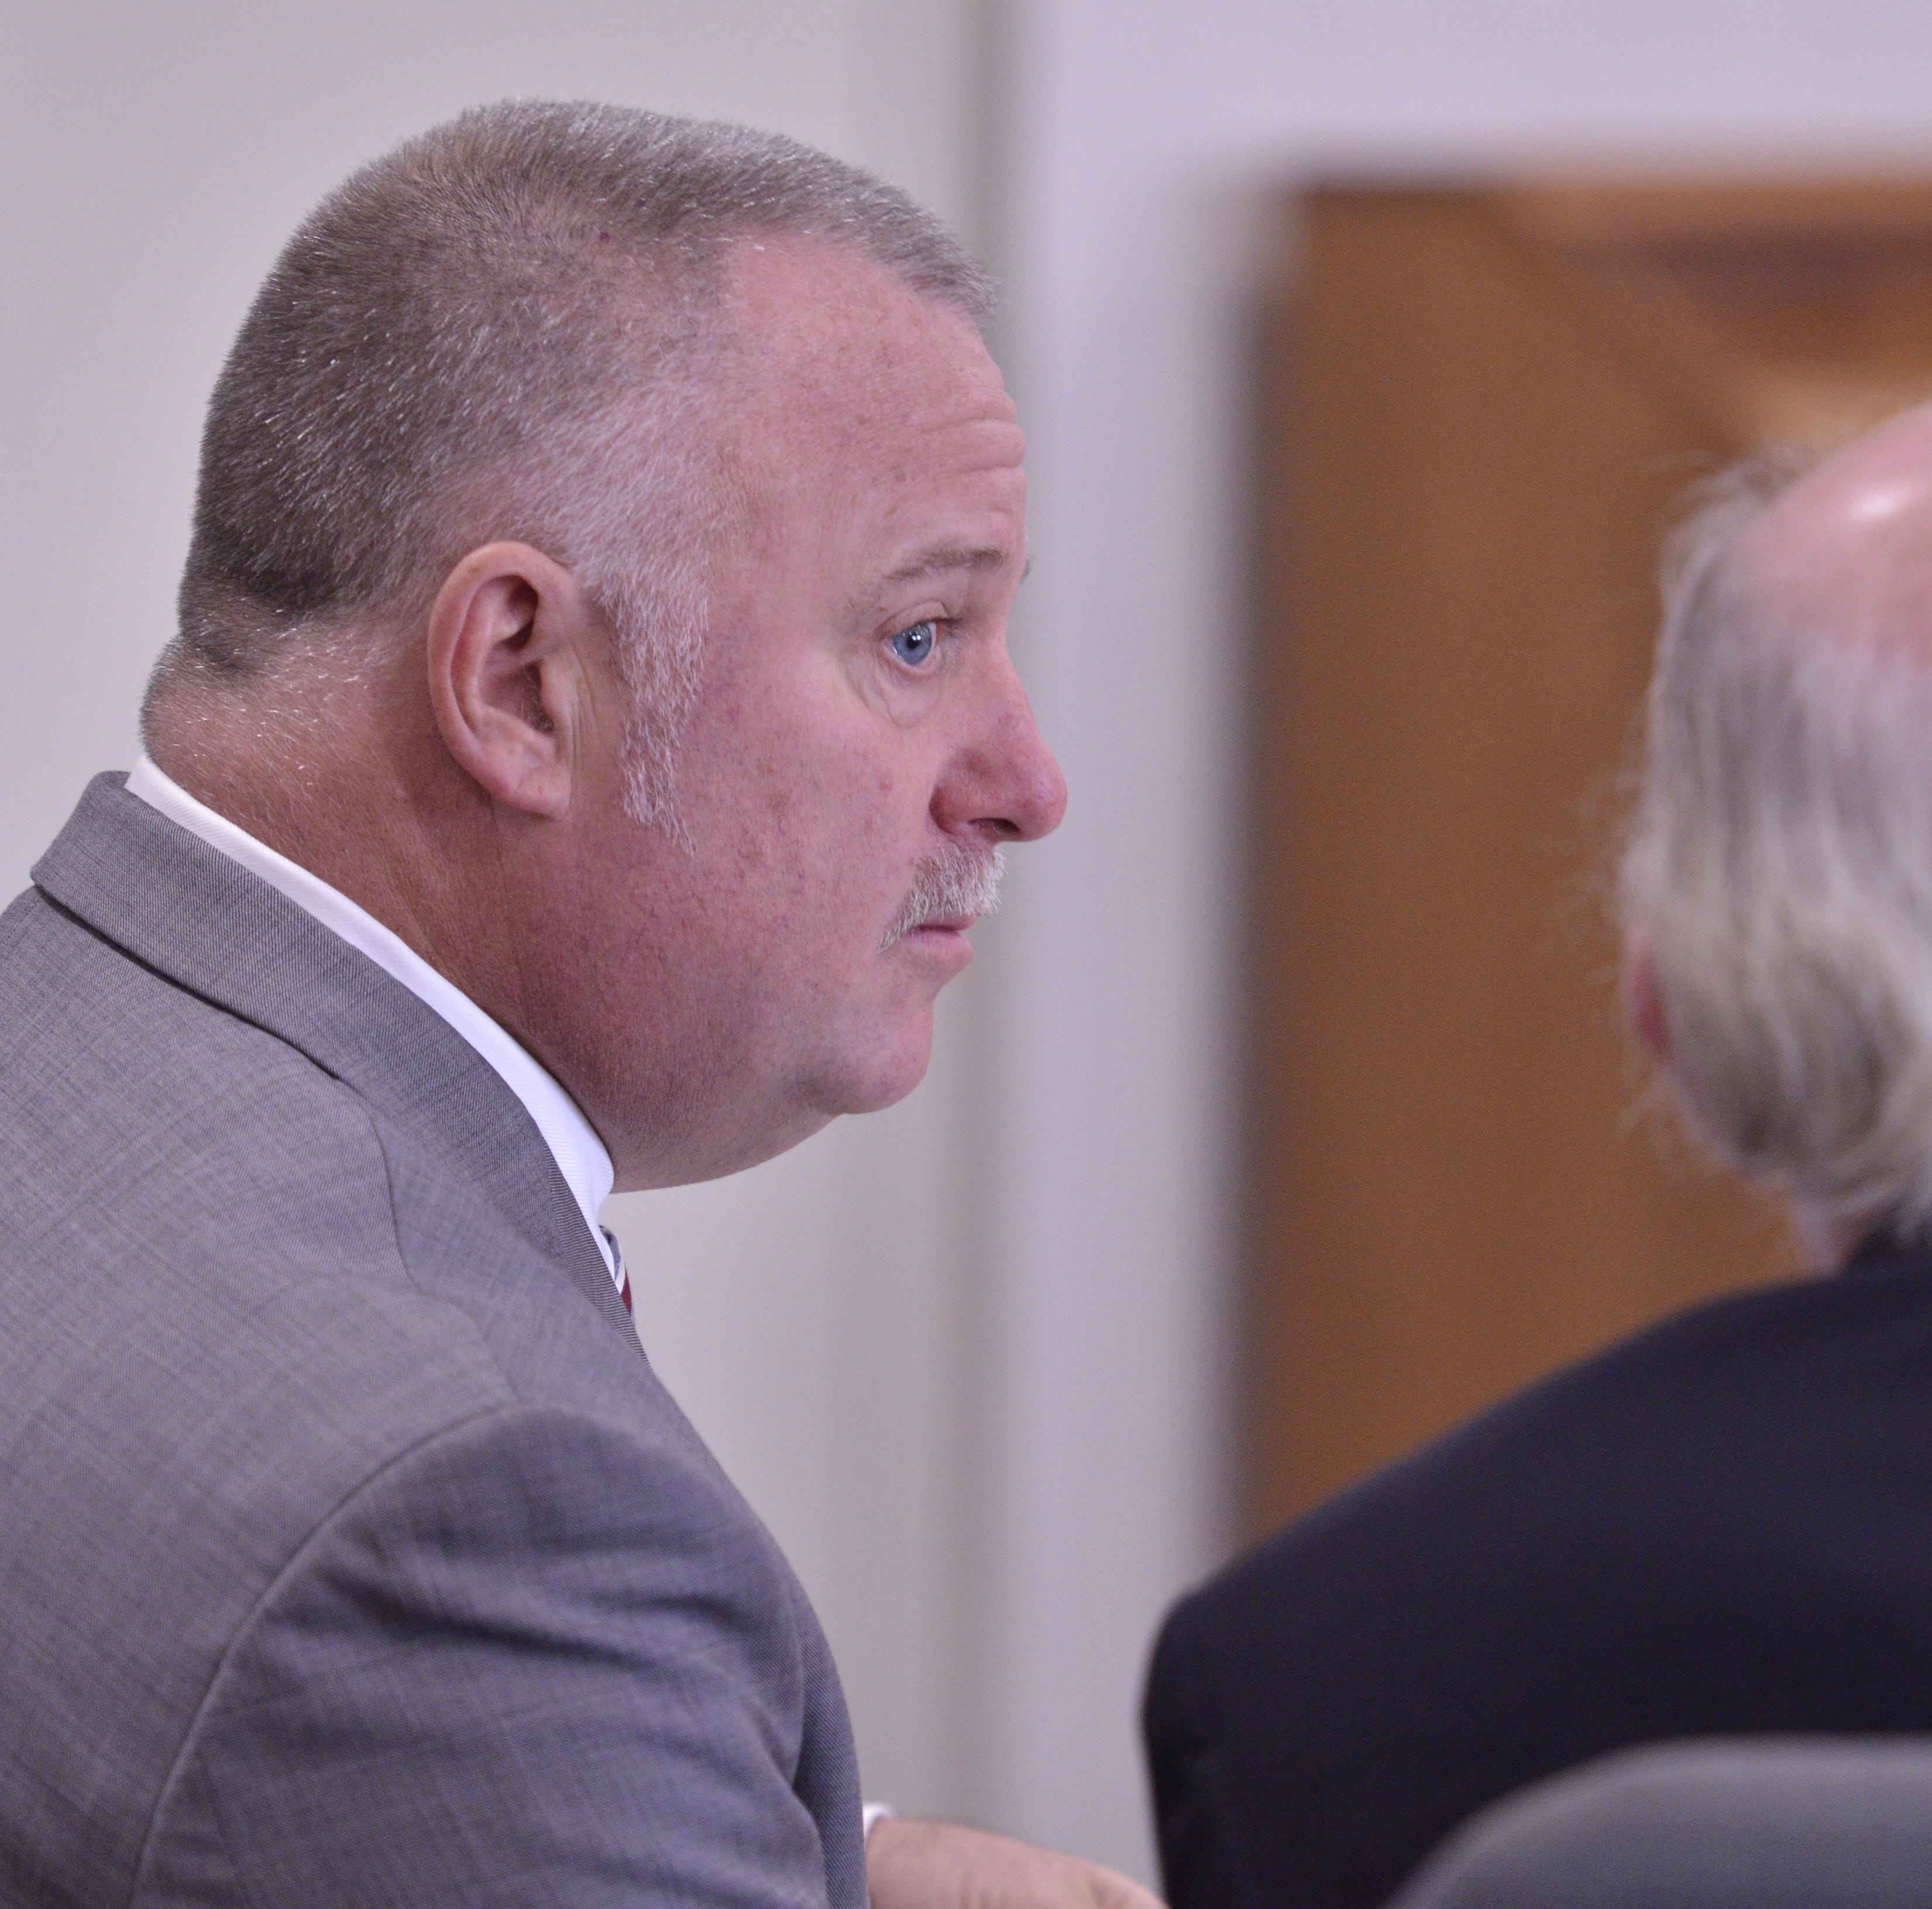 David Scibek with his lawyer Ernest  Allen during a trial regarding an accusation that Scibek hurt a student in his class on Nov. 14, 2018 at Chittenden Criminal Court in Burlington.